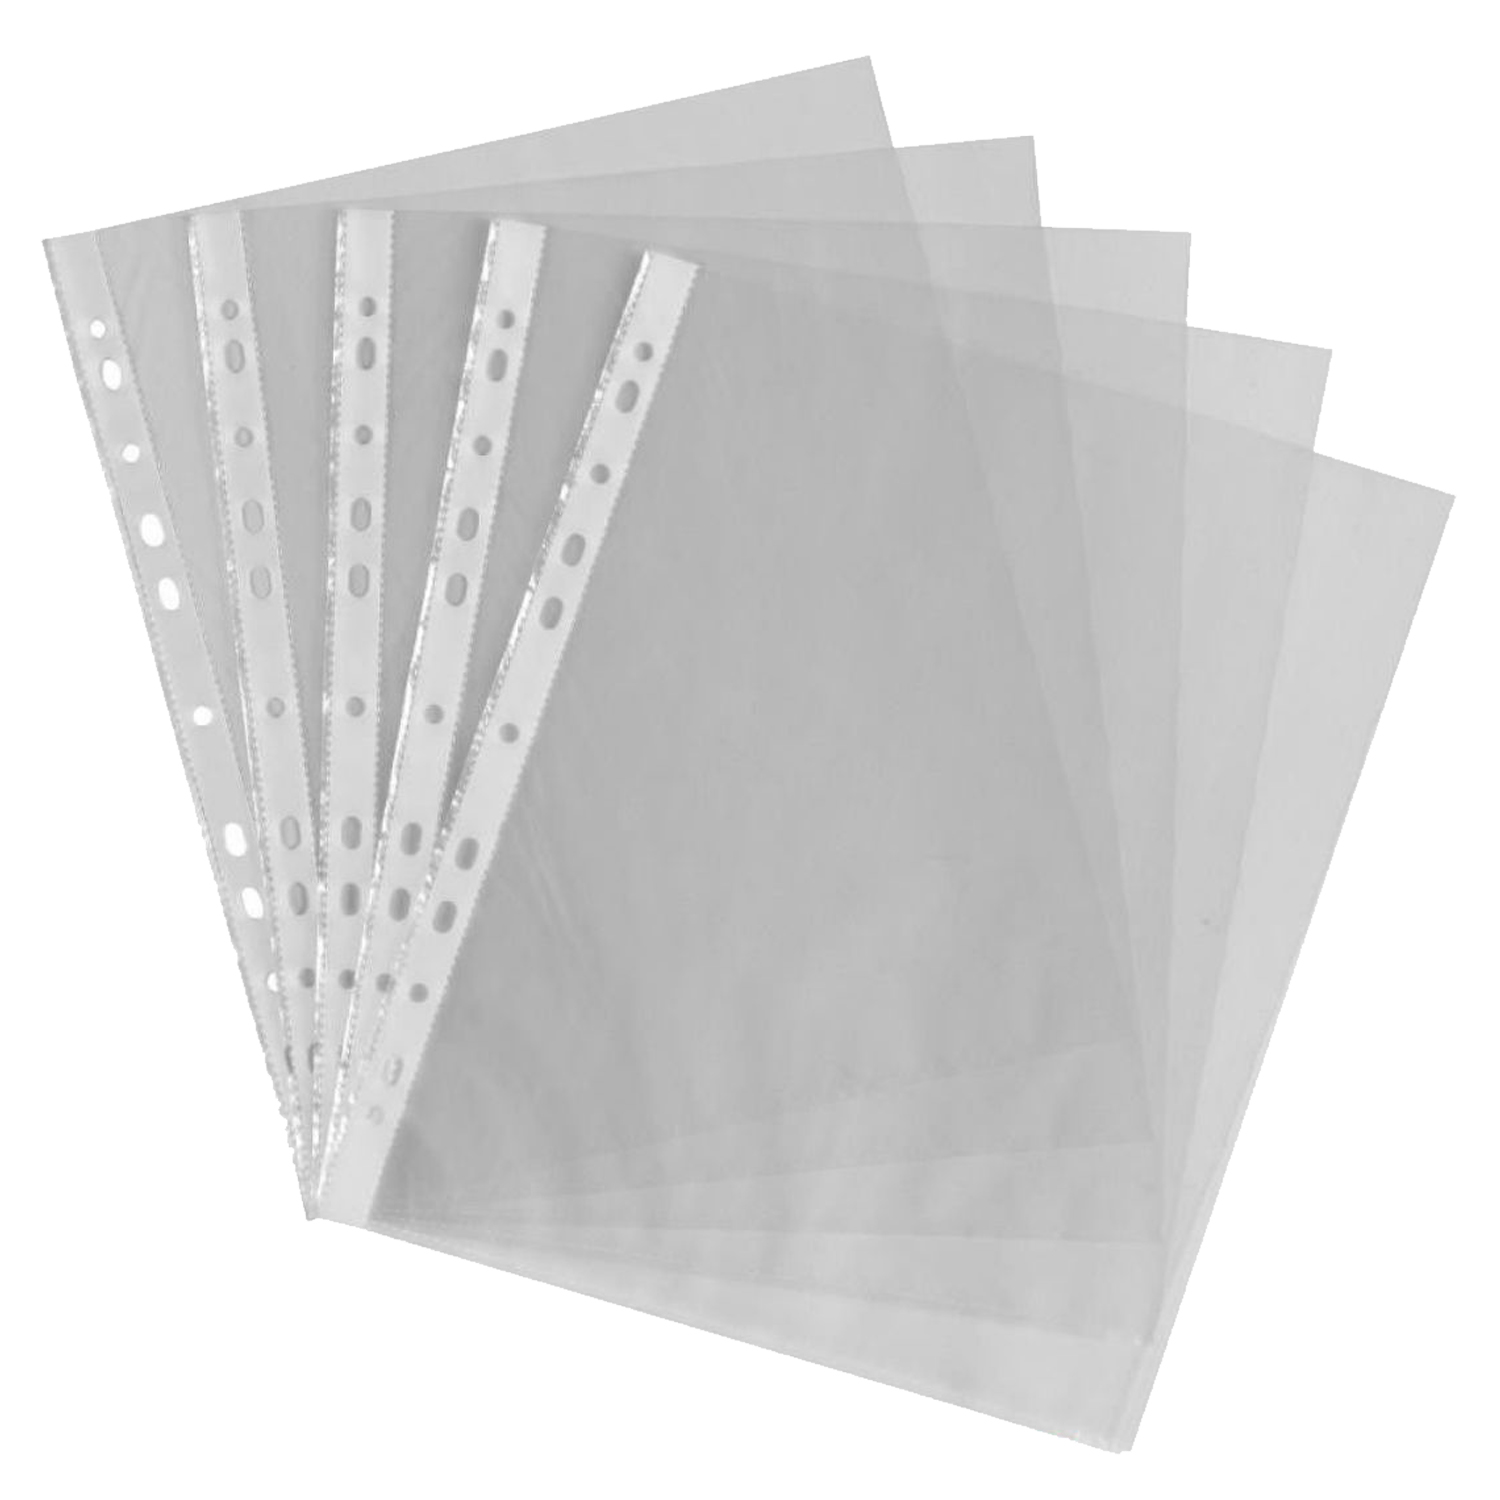 Affordable A4 Clear Plastic Punched Pockets / Sleeves 200 Pcs 11 Hole A4 File Bag